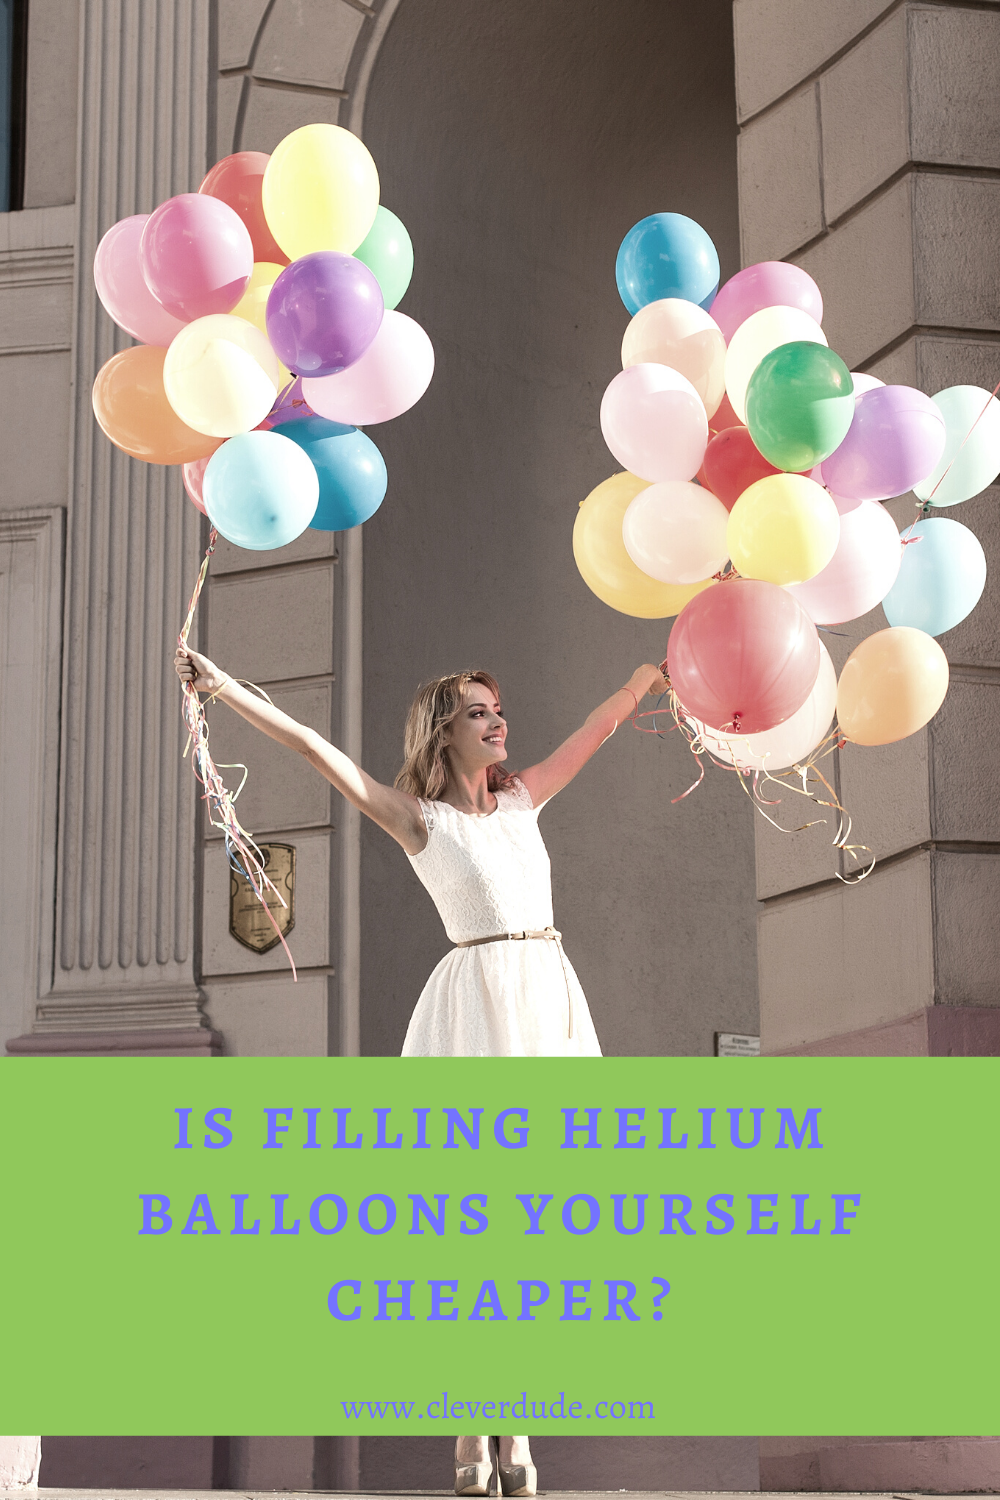 Is Filling Helium Balloons Yourself Cheaper